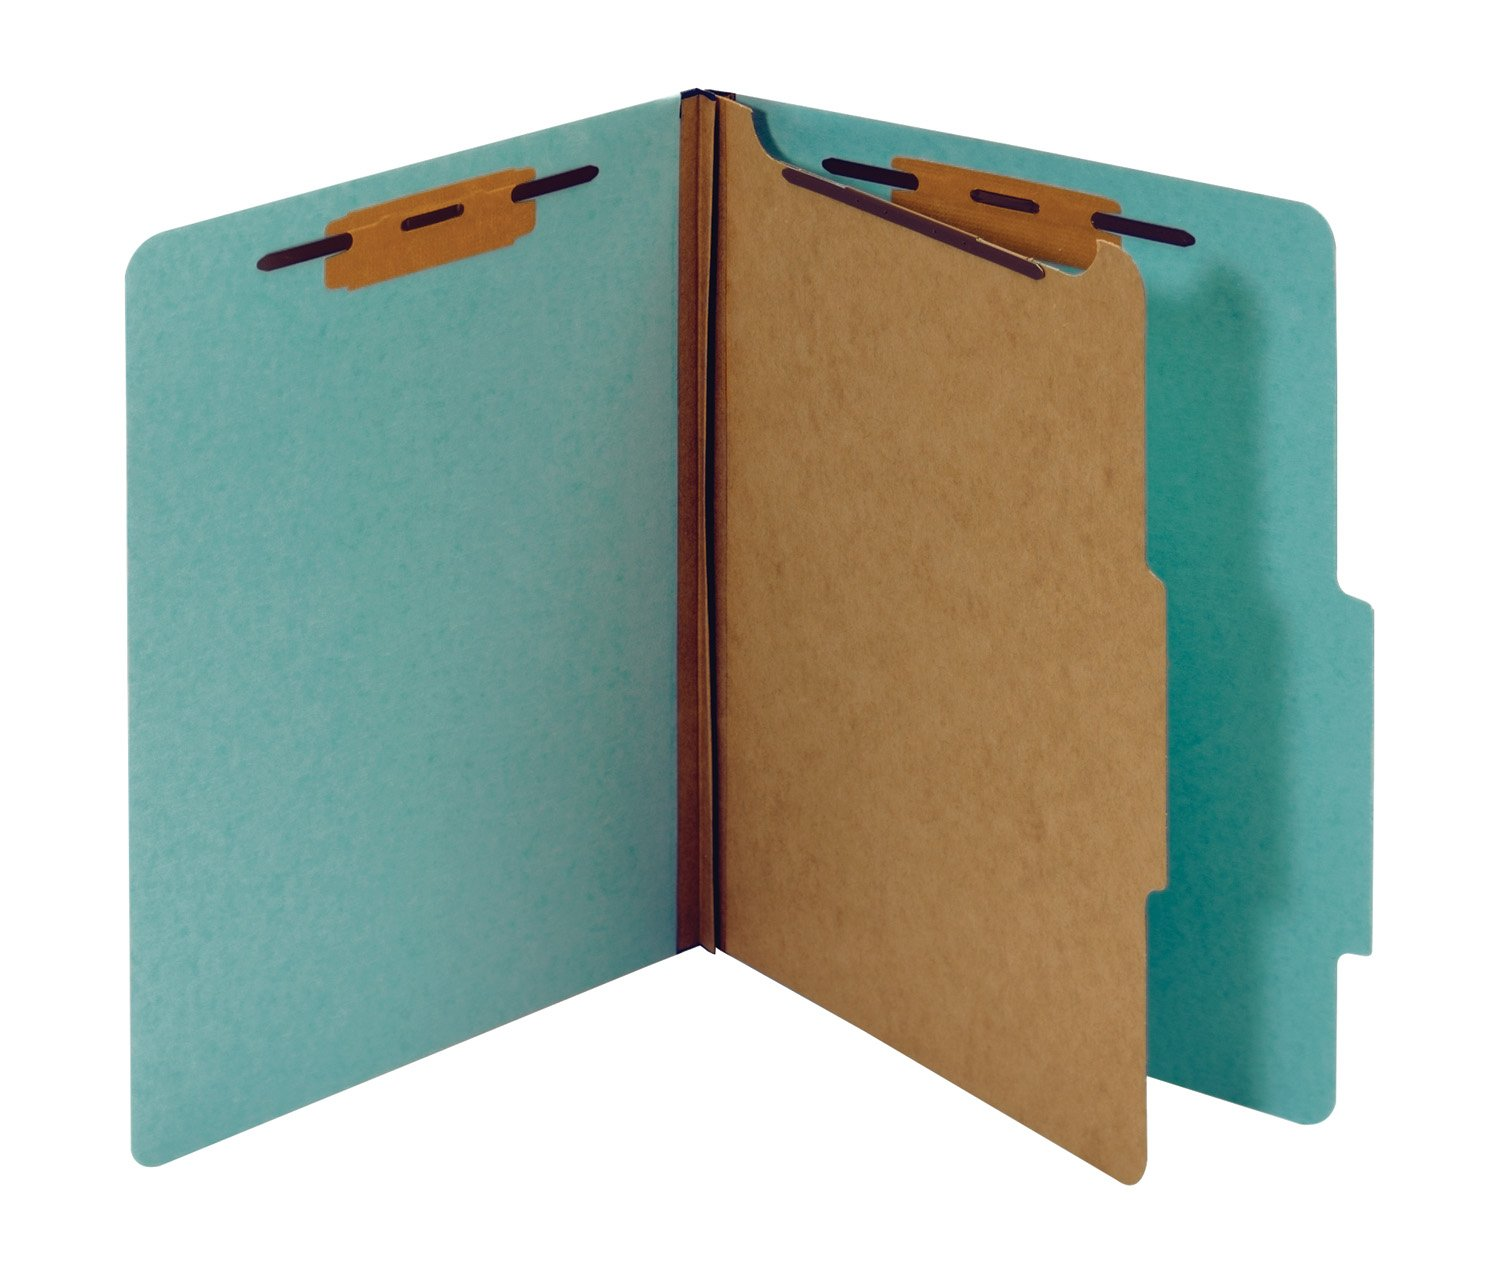 Globe-Weis/Pendaflex Classification Folder, Letter Size, 1 Divider, Light Blue, Pack of 20 Folders (PU41 LBL)